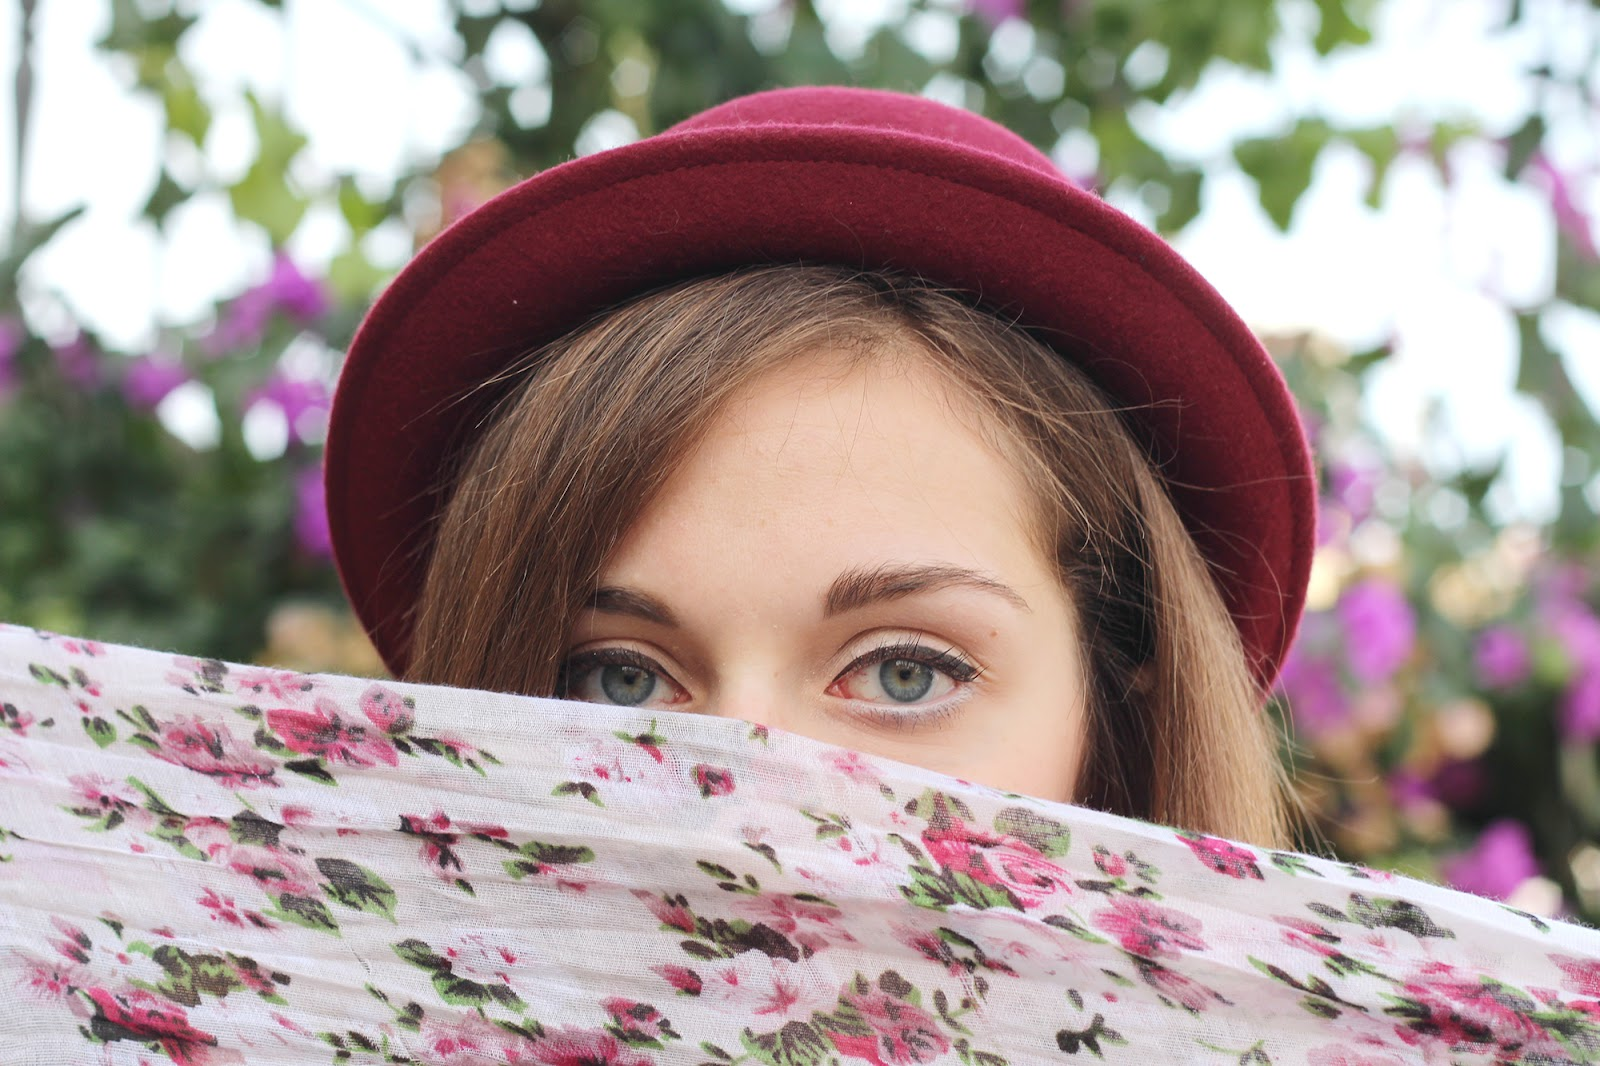 italian girl fashion blogger hat cappello occhi eyes light flowers fashion